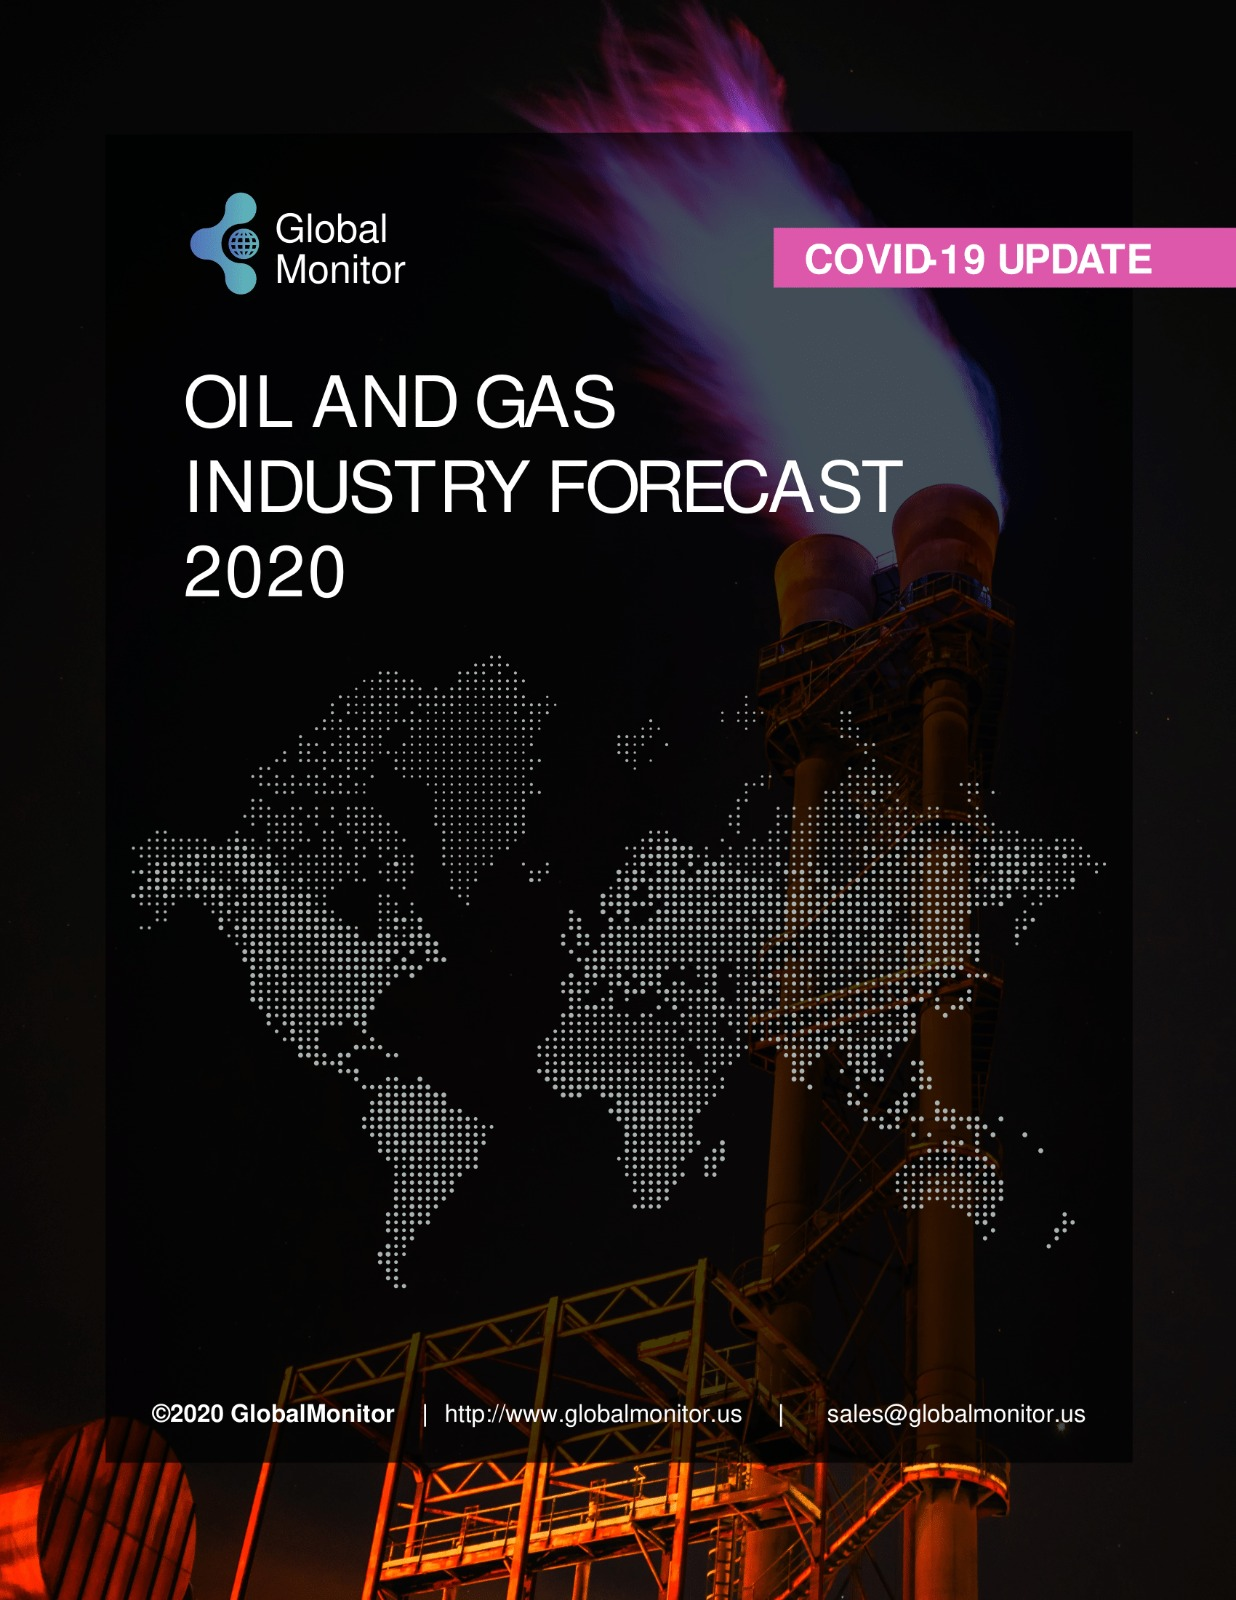 Croatia Oil and Gas Market Report with COVID-19 impact Analysis (2020-2025)